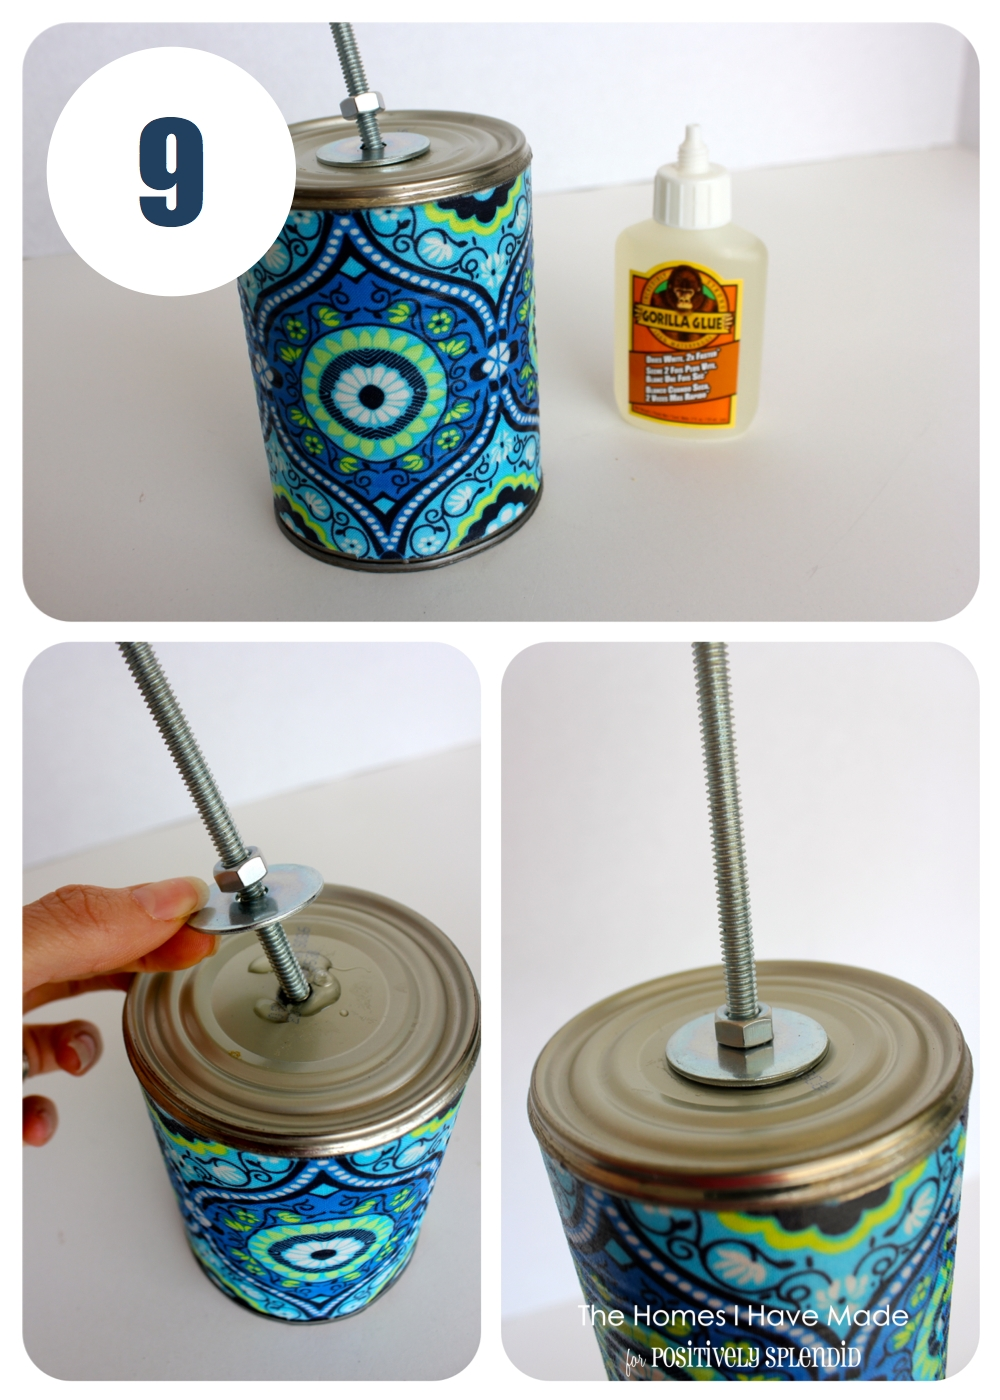 Outdoor Drink Holder Tutorial - Positively Splendid {Crafts, Sewing,  Recipes and Home Decor} - Outdoor Drink Holder Tutorial - Positively Splendid {Crafts, Sewing